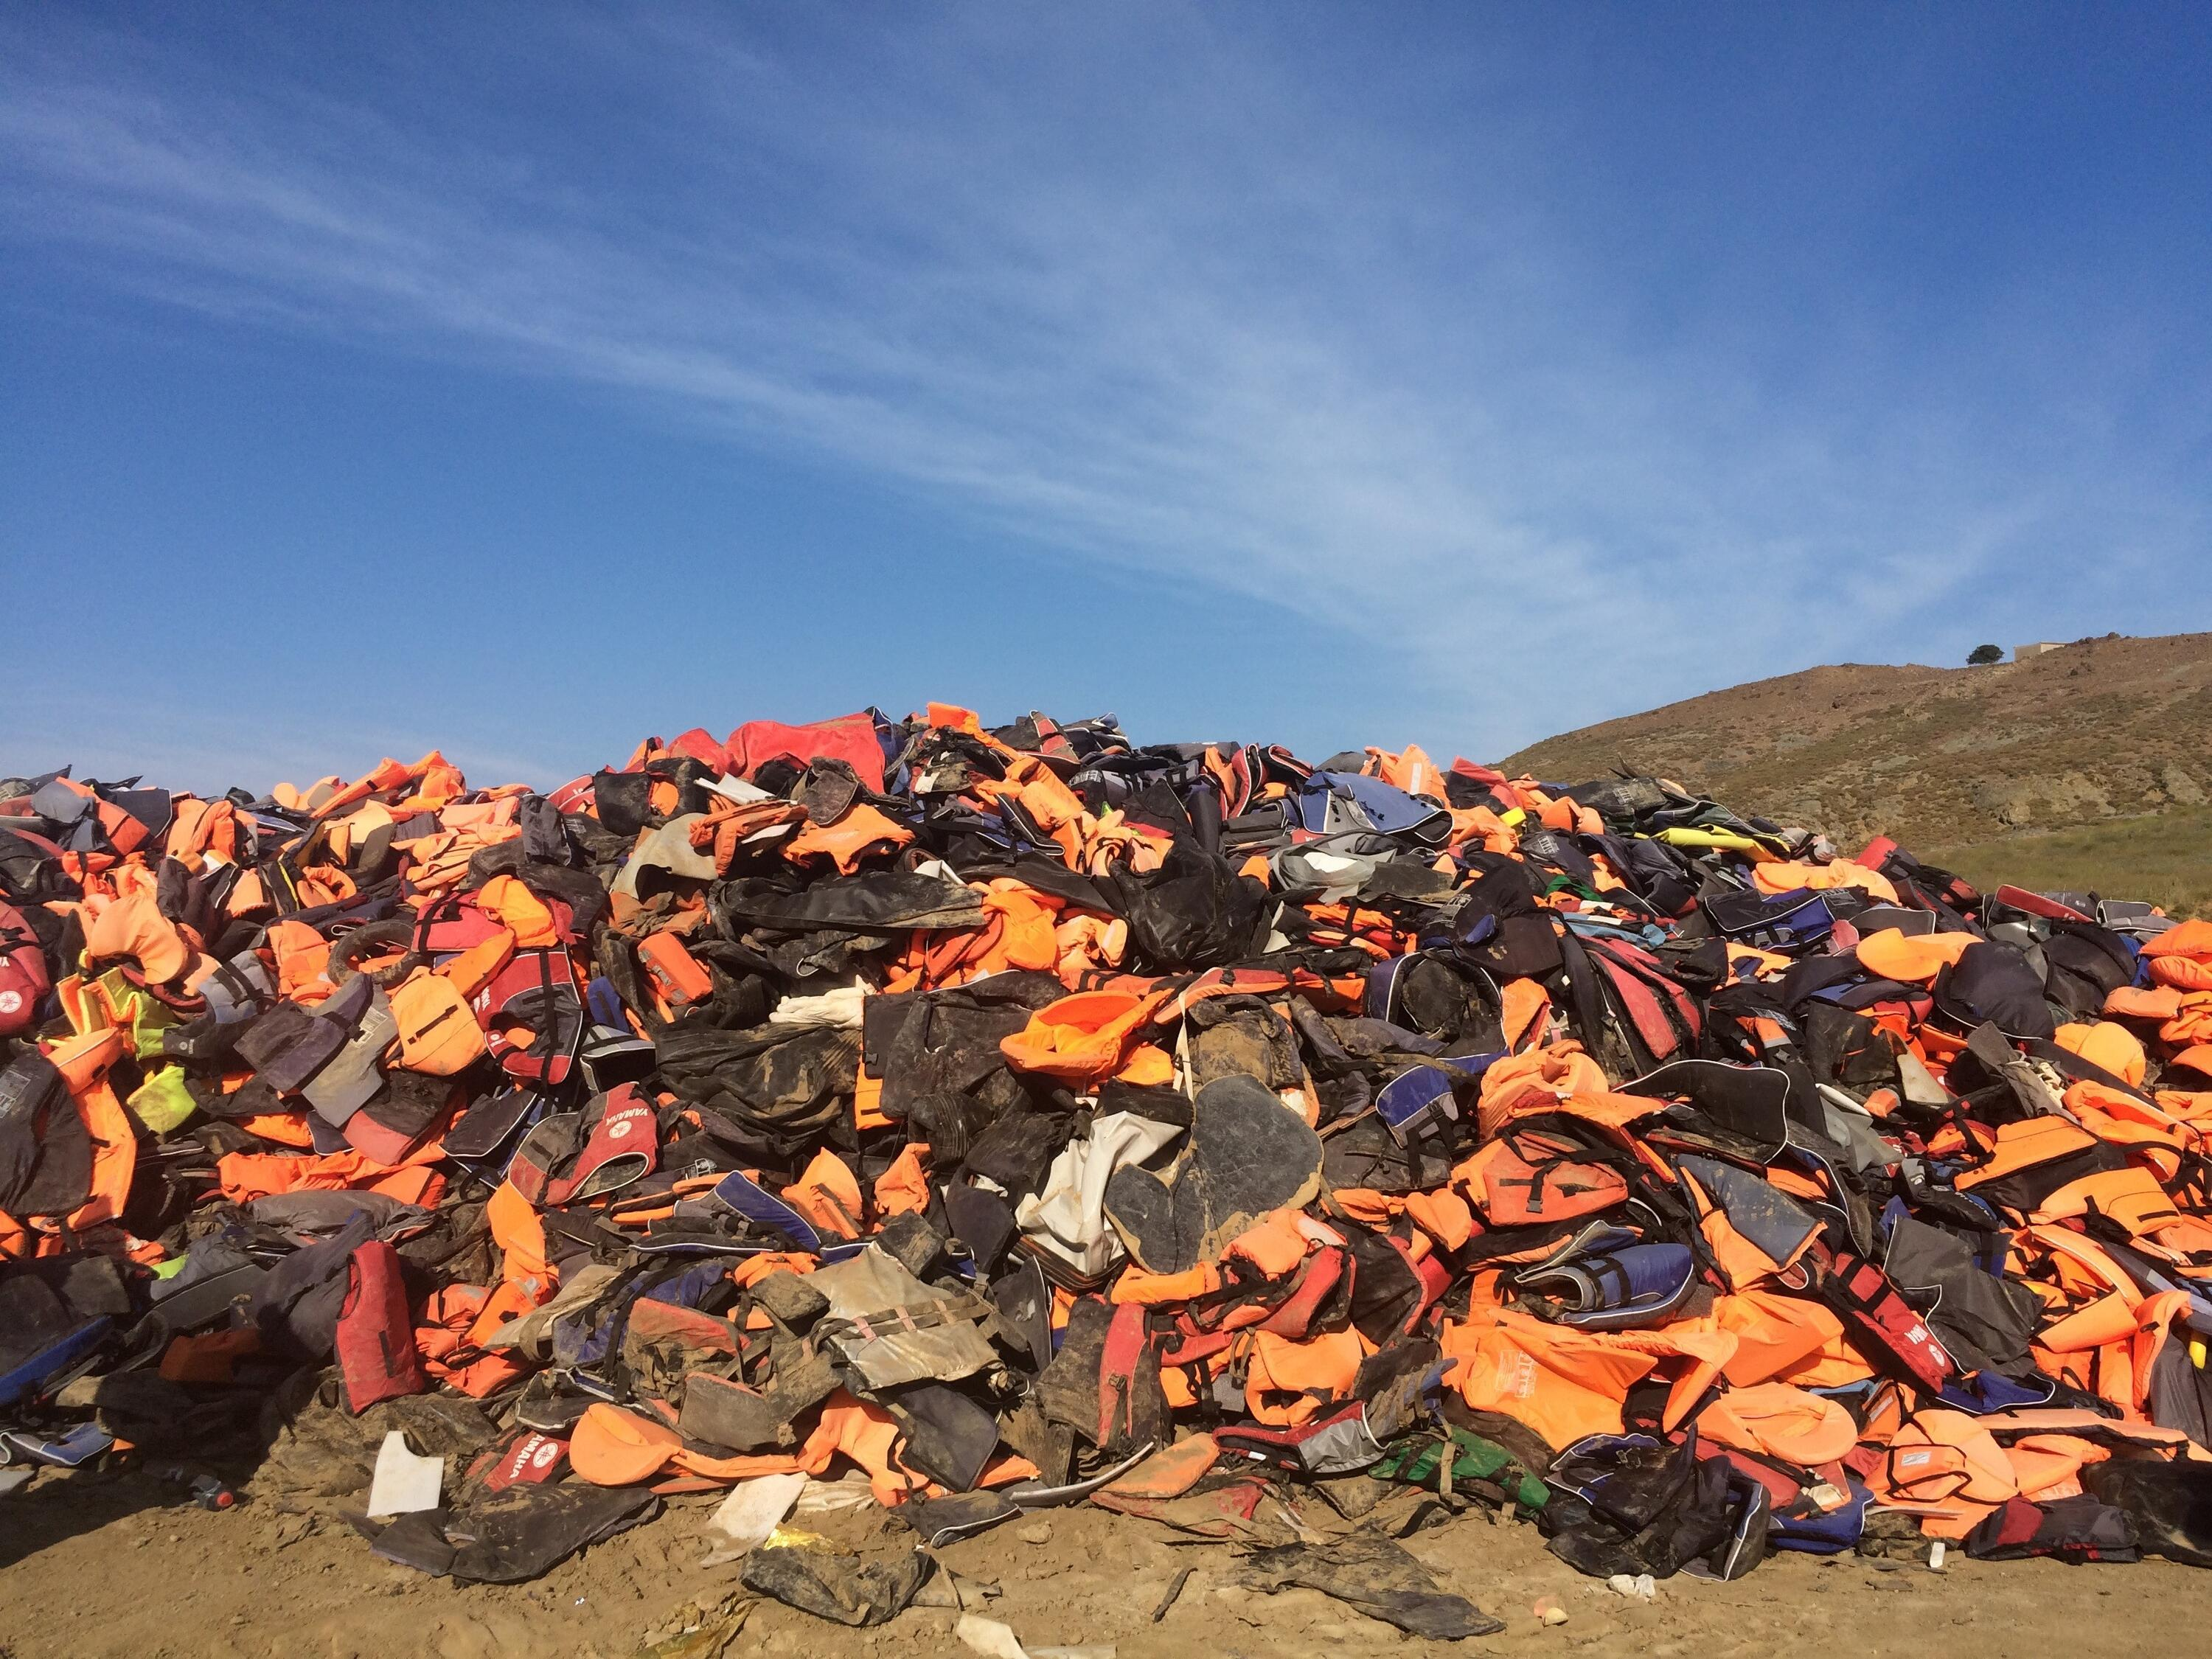 Life Jacket Graveyard on the island of Lesvos, piled with thousands of orange lifejackets